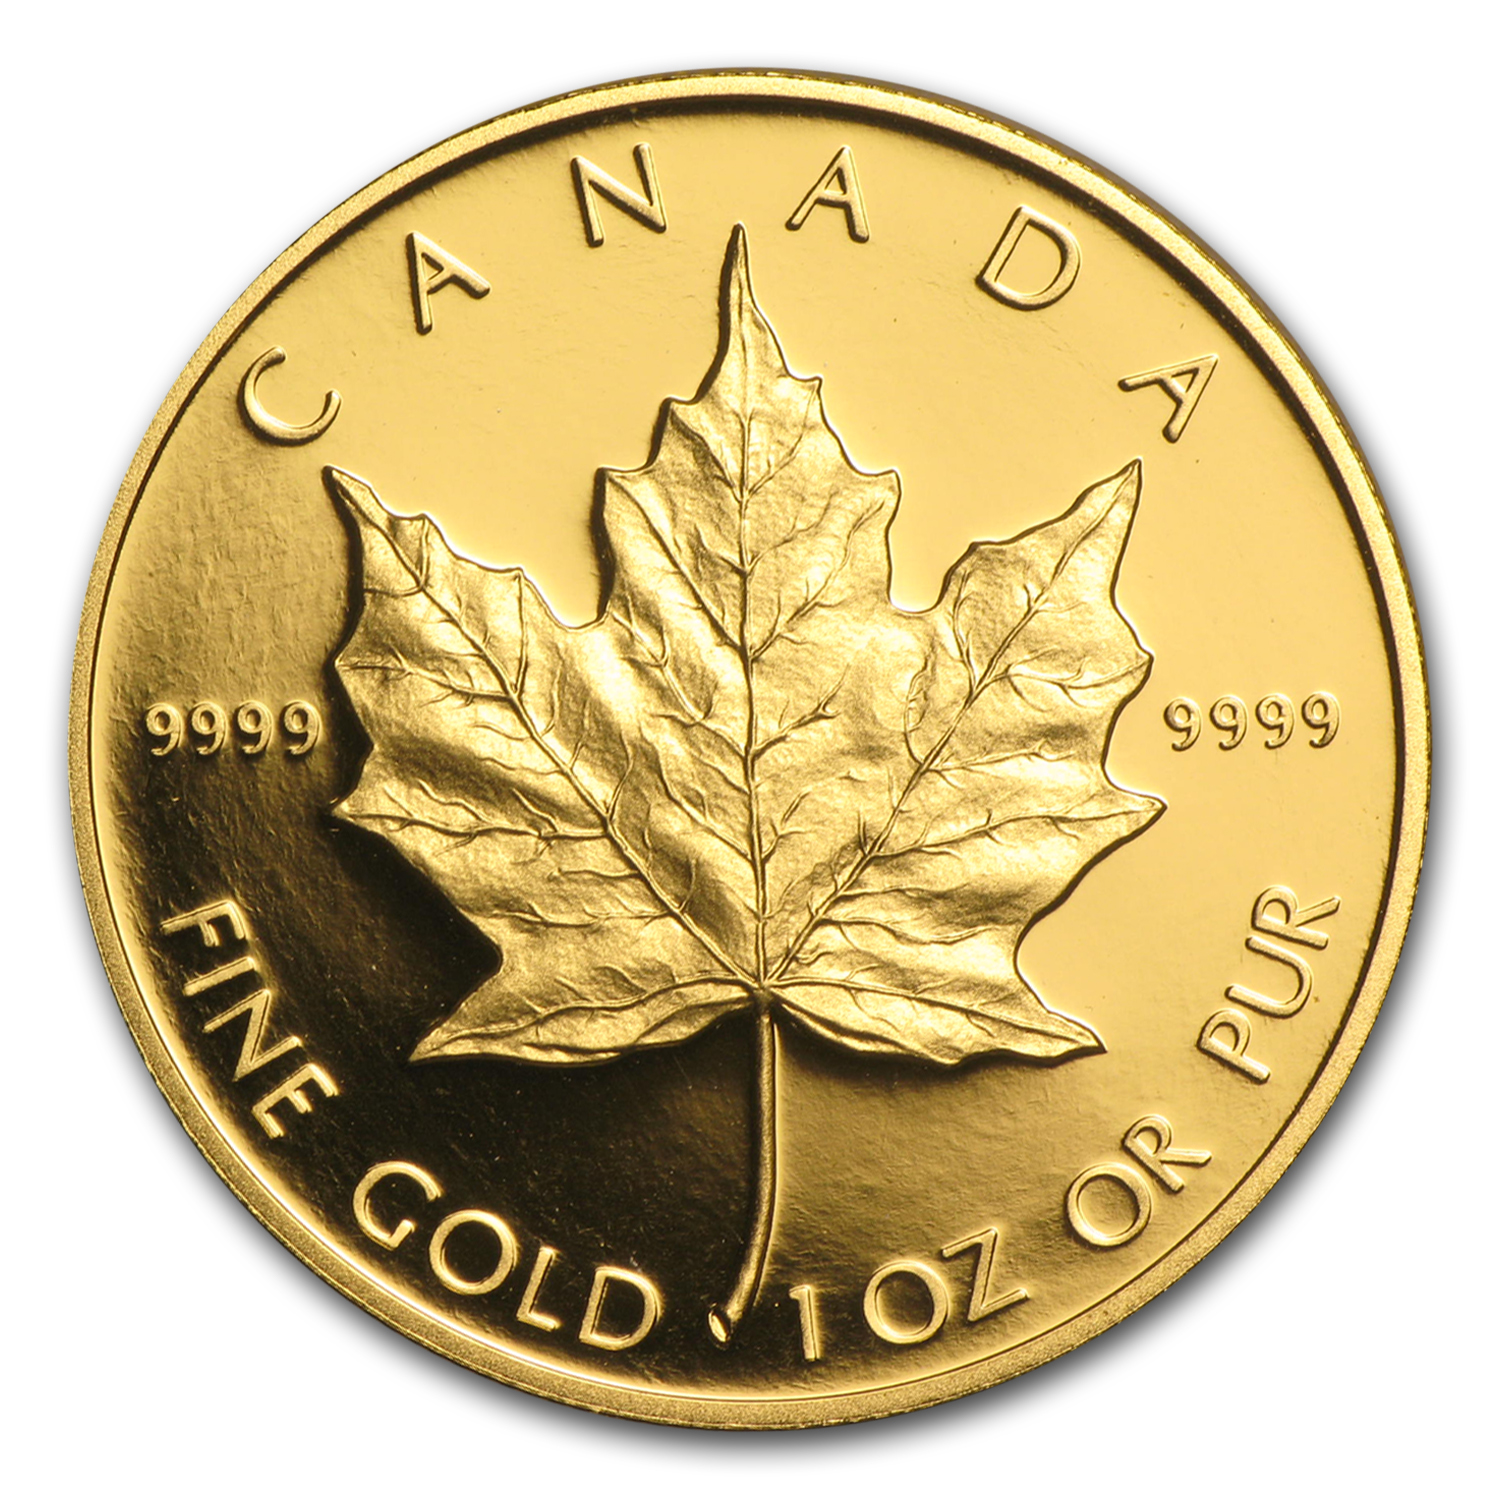 1989 Canada 1 oz Proof Gold Maple Leaf (Capsule Only)